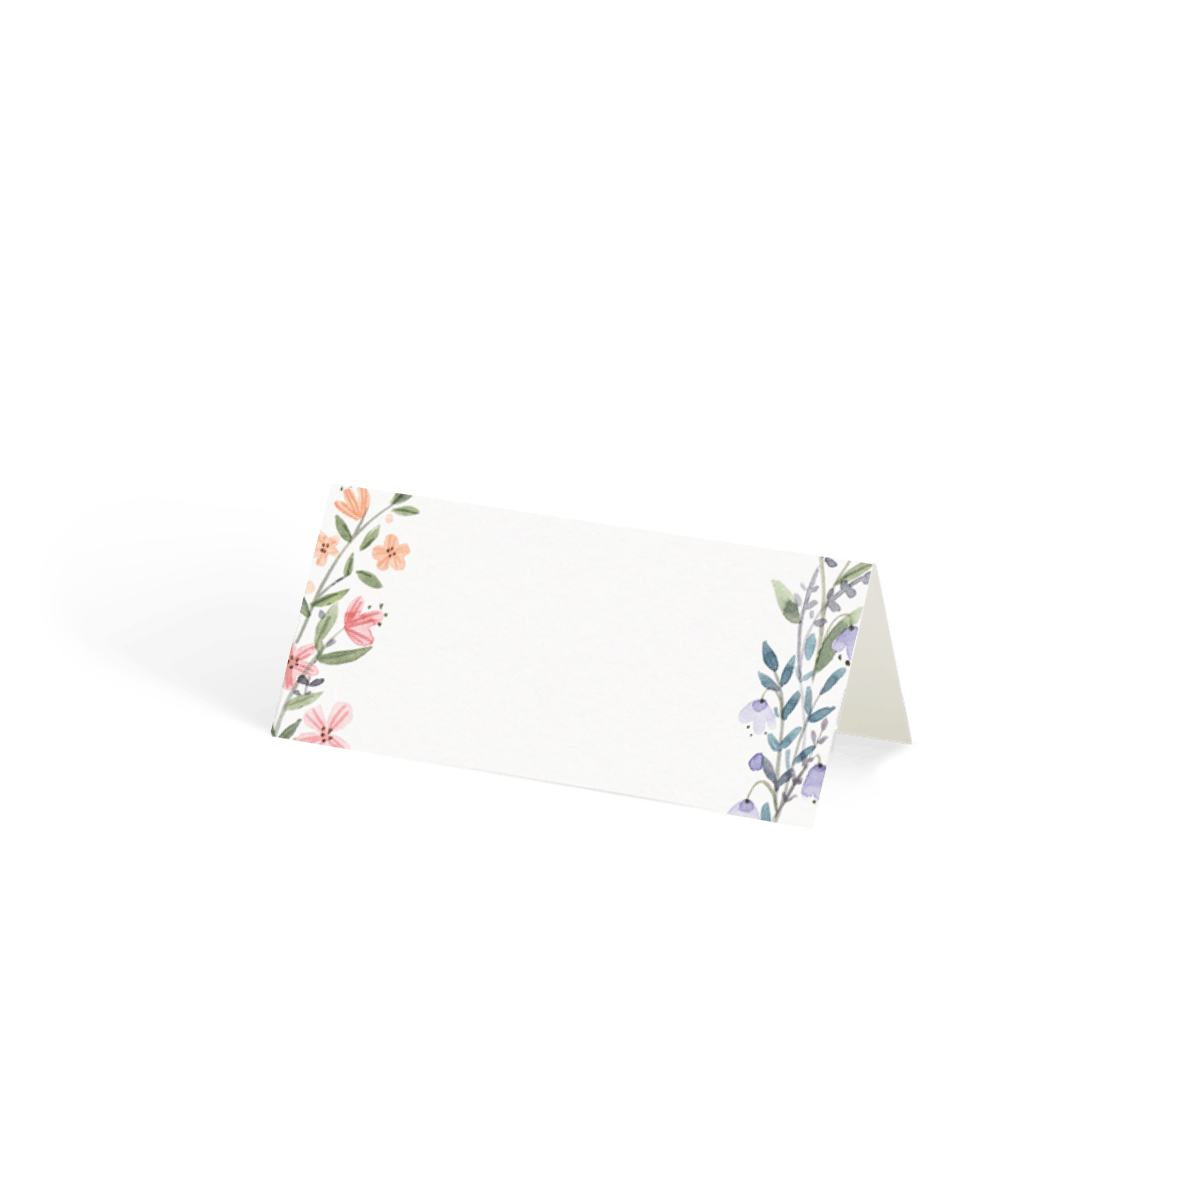 Https%3a%2f%2fwww.papier.com%2fproduct image%2f81505%2f8%2fspring wildflowers 19577 vorderseite 1561977629.png?ixlib=rb 1.1